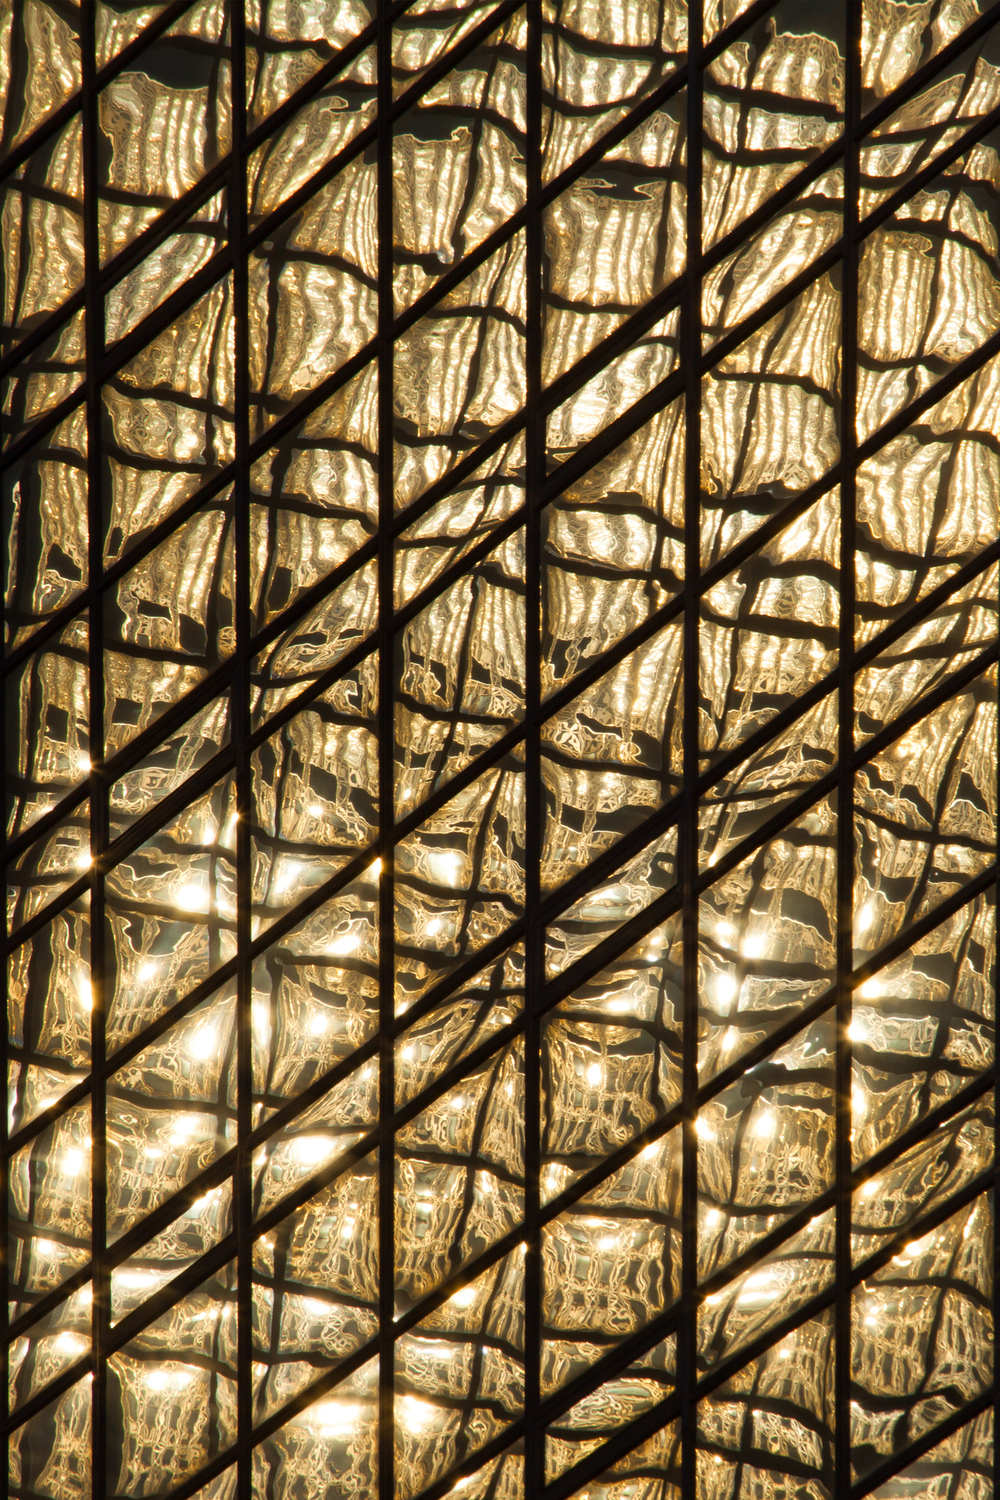 Architectural_abstractions_150725-9870_FINAL.jpg